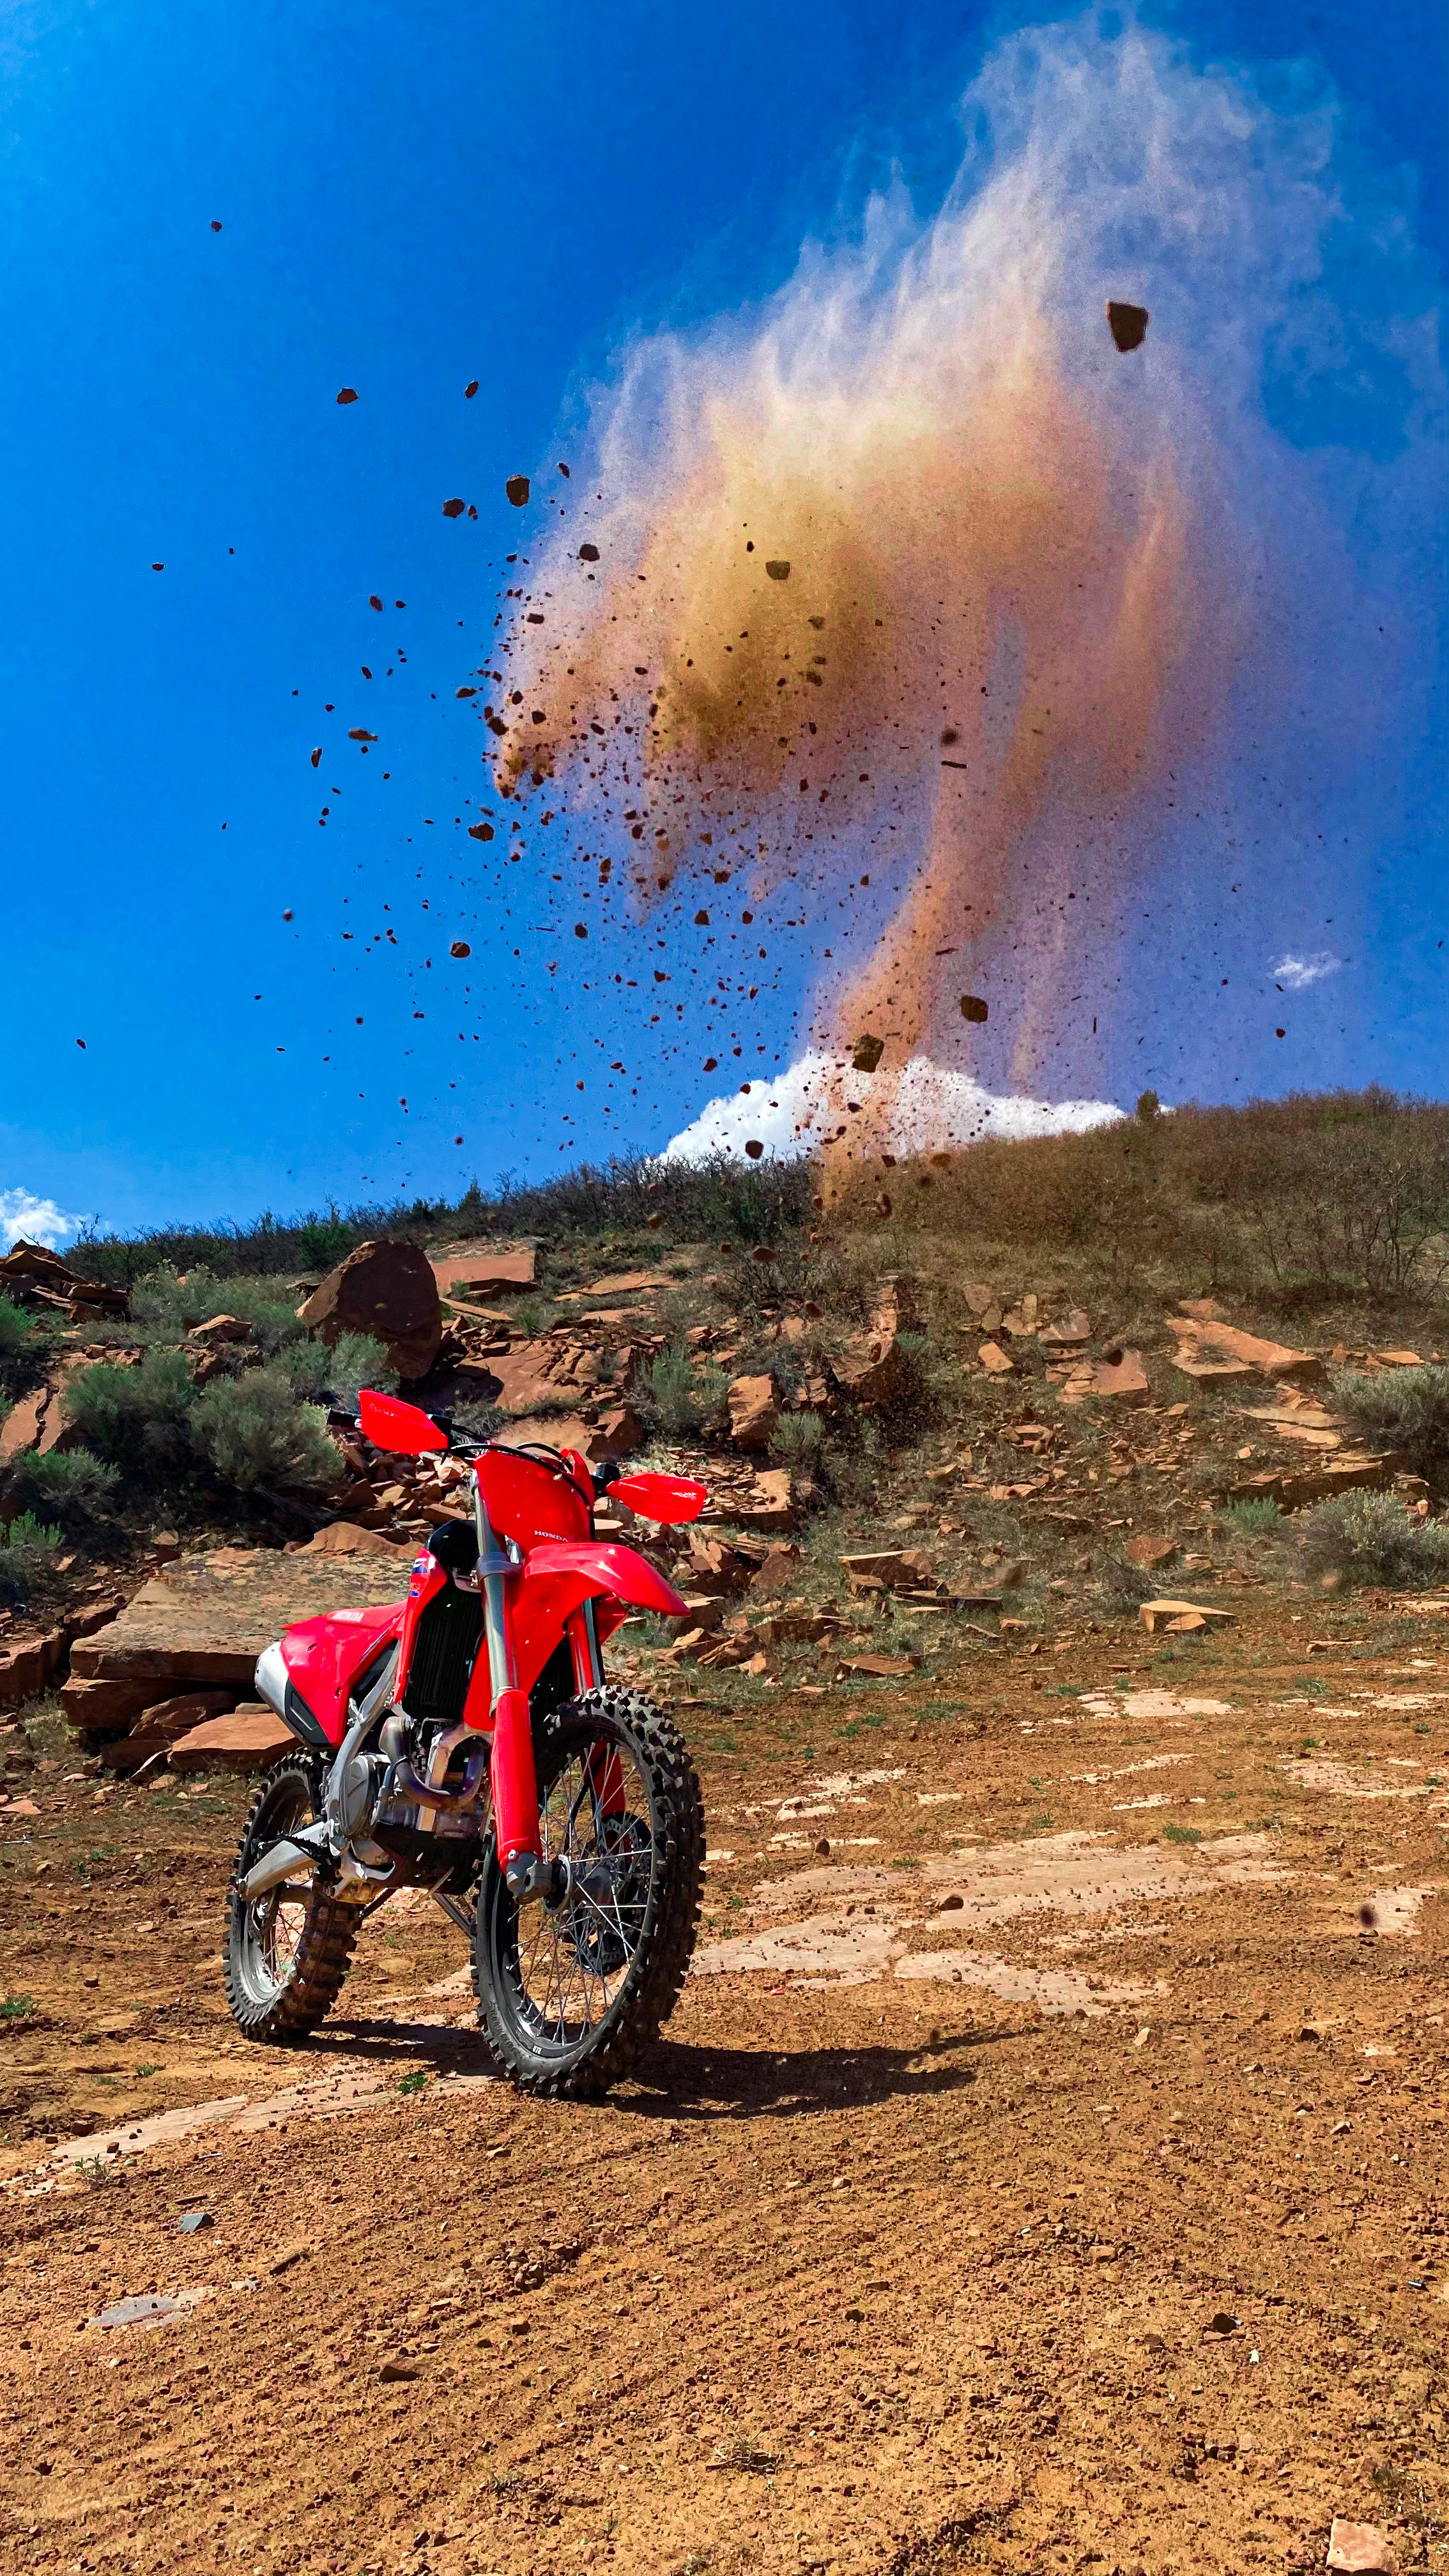 Dirt thrown up to make a nice photo of the CRF450RX.